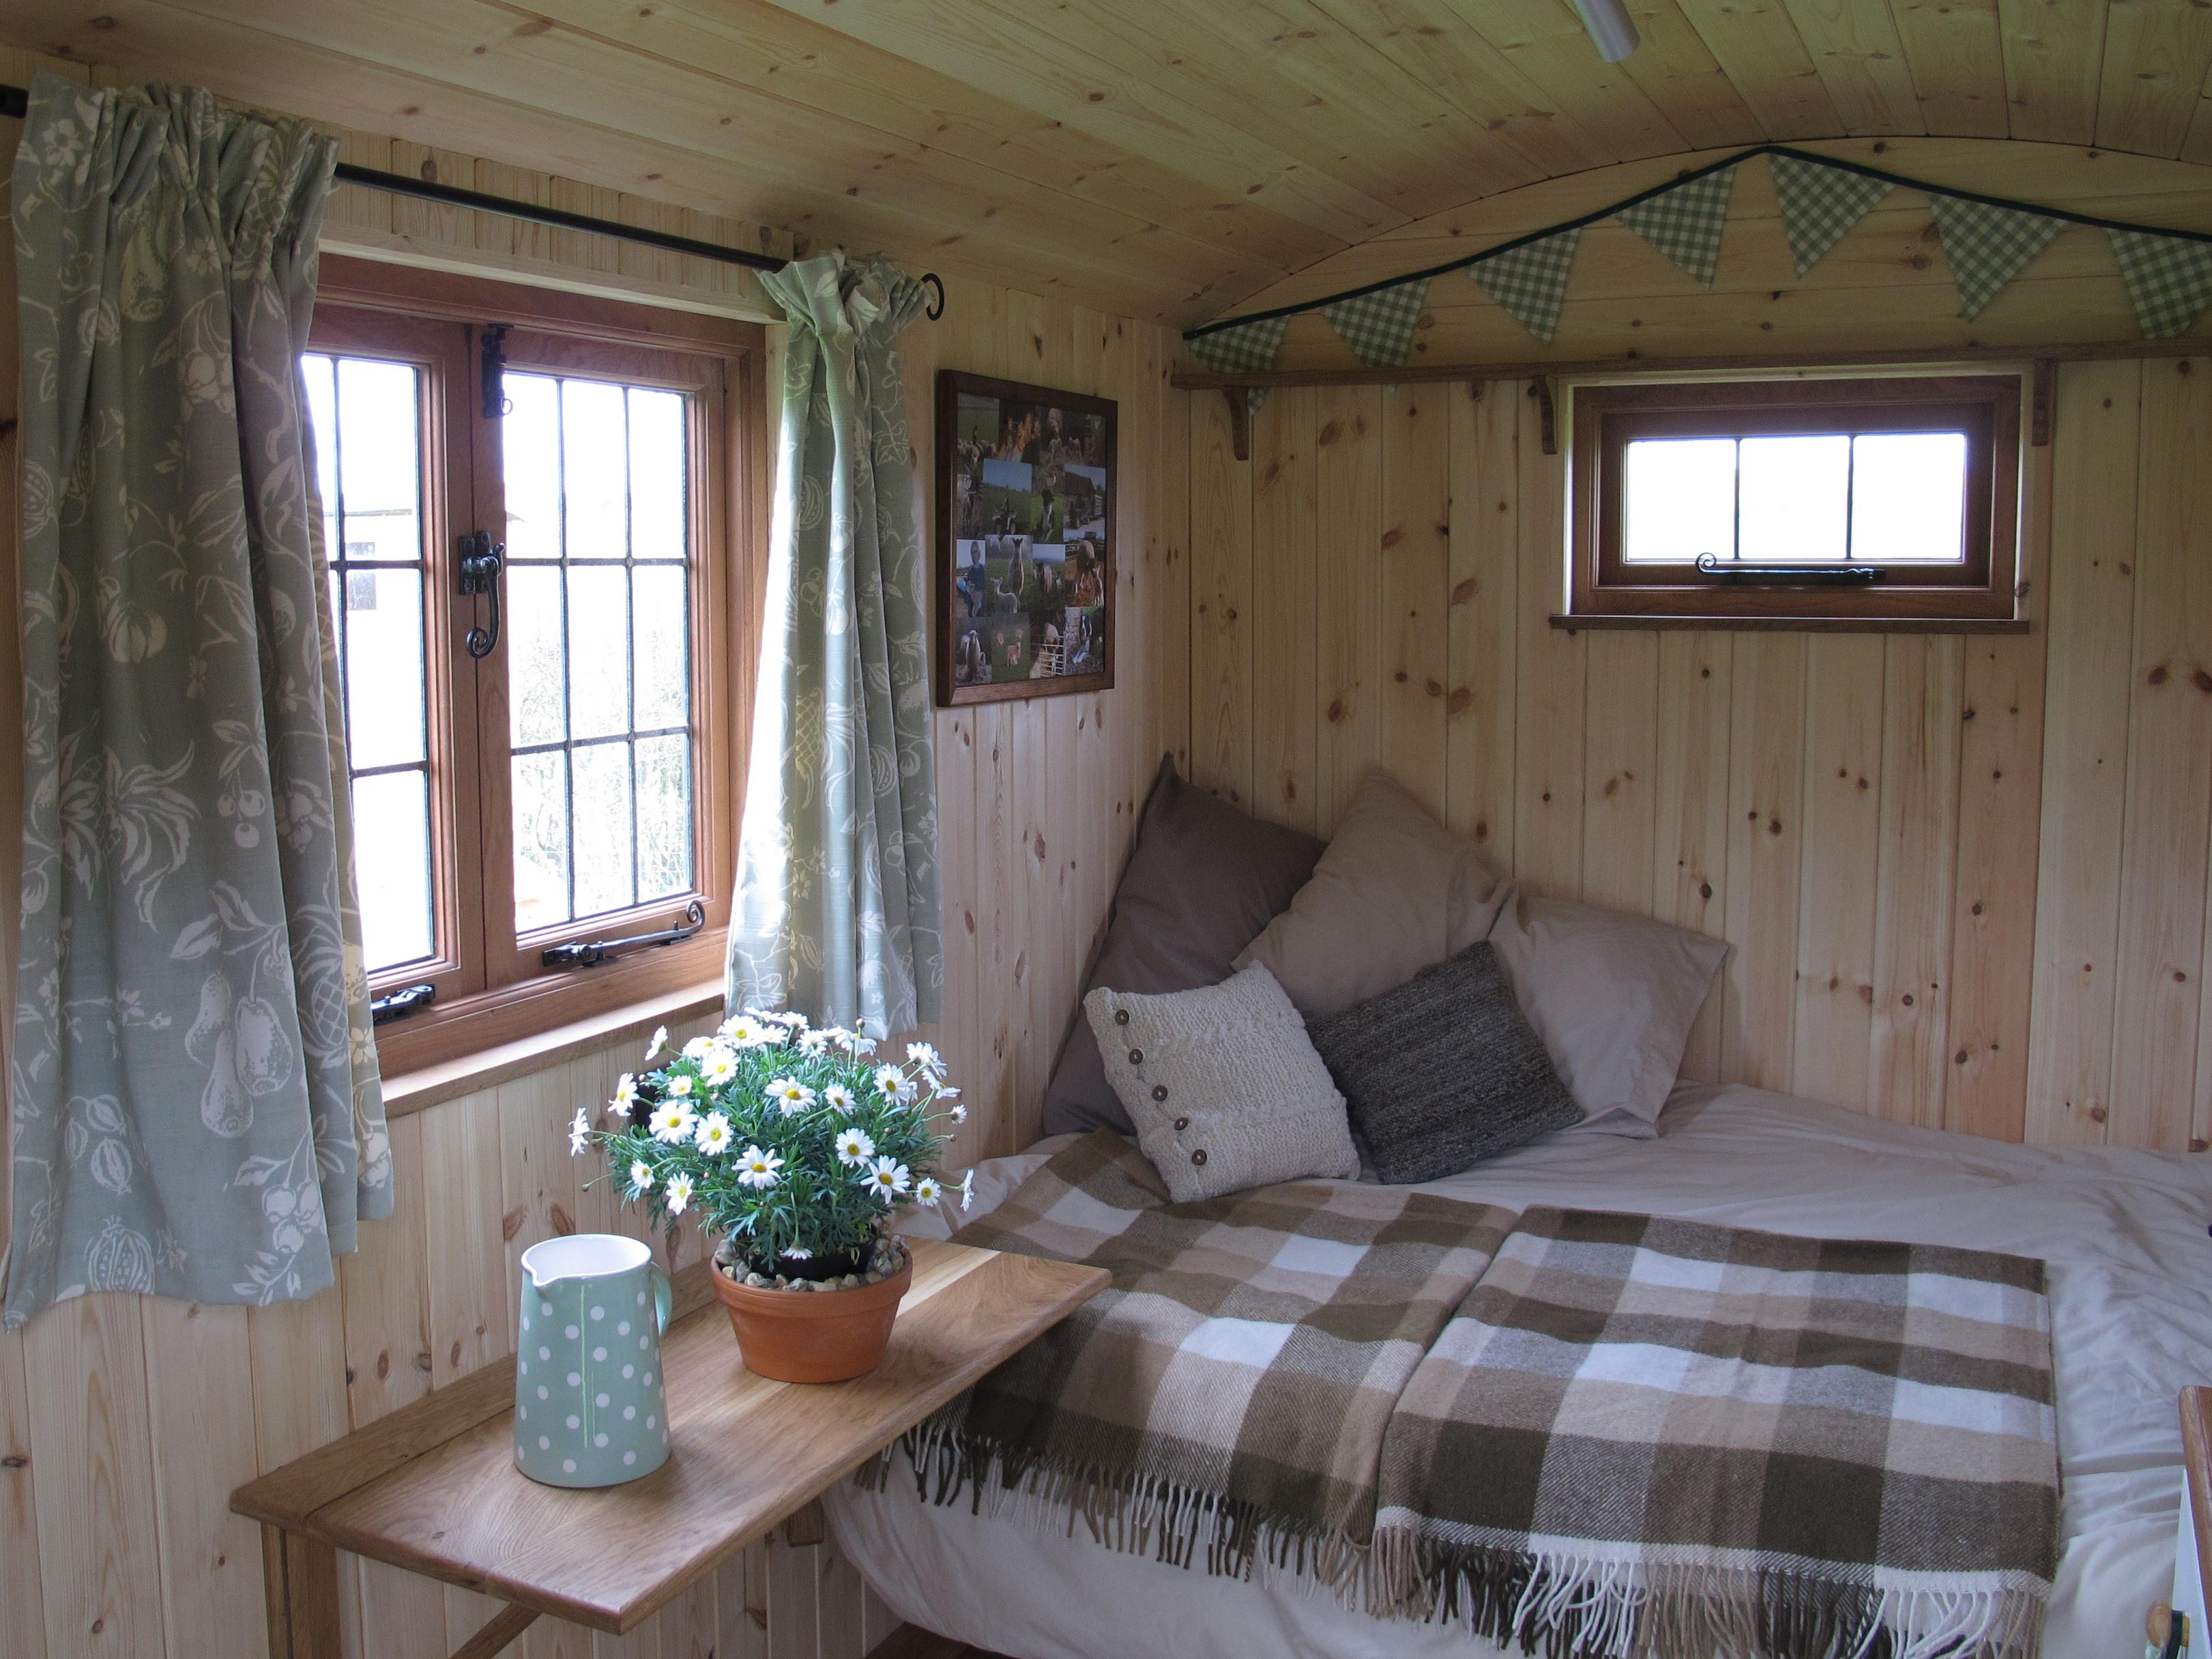 Hut-Classic-Shared Bathroom-Garden View-shepherds hut